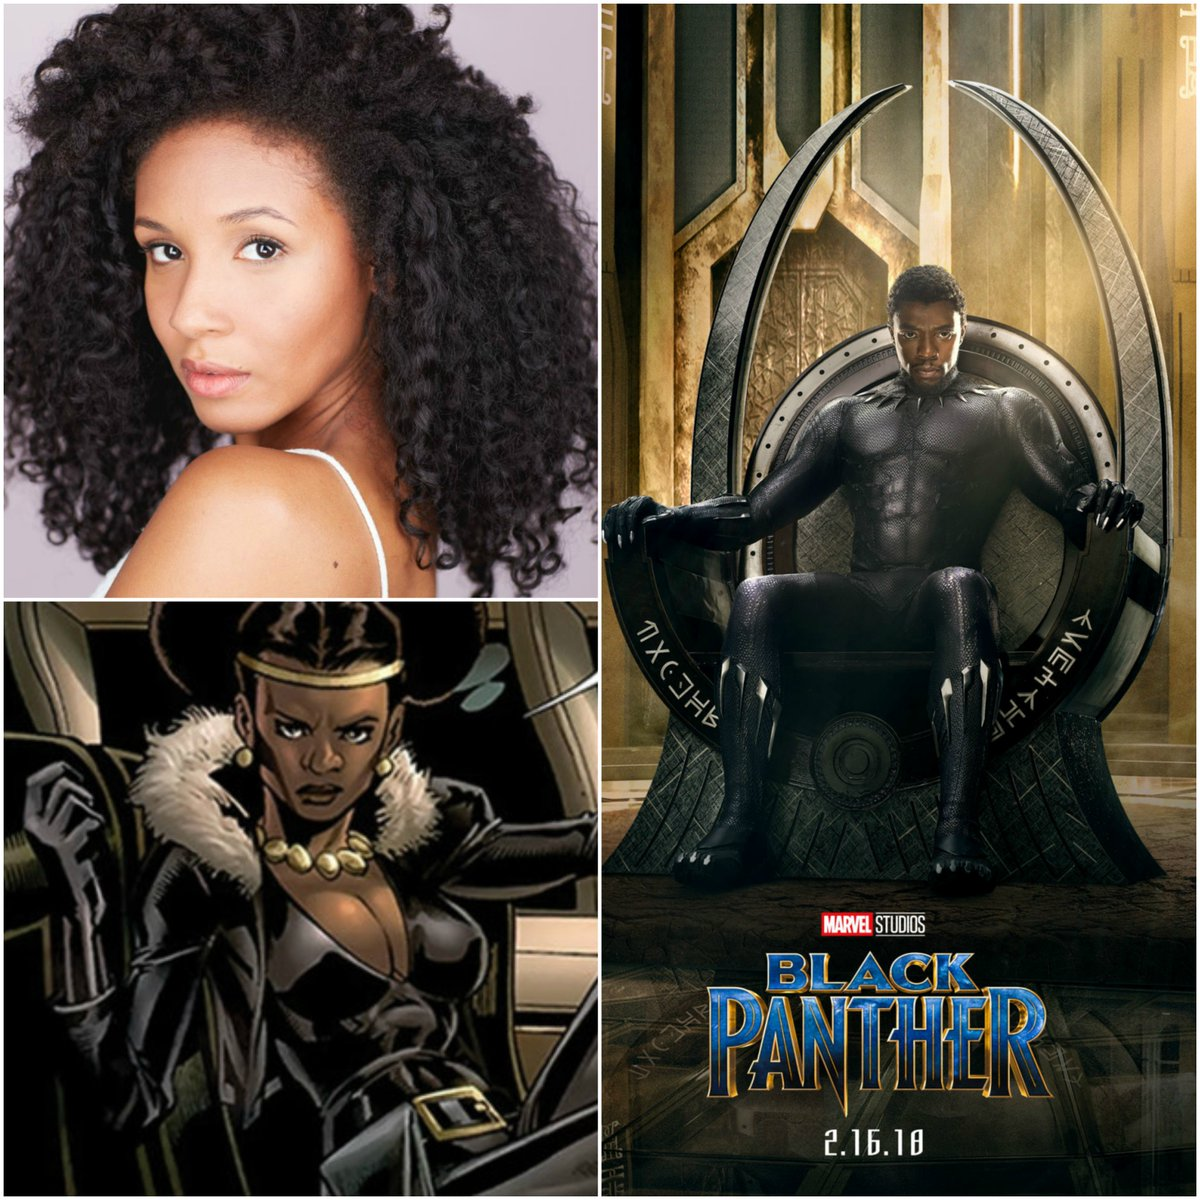 Image result for Black Panther movies grabs Jimmy Cliff's daughter Nabiyah Be for role